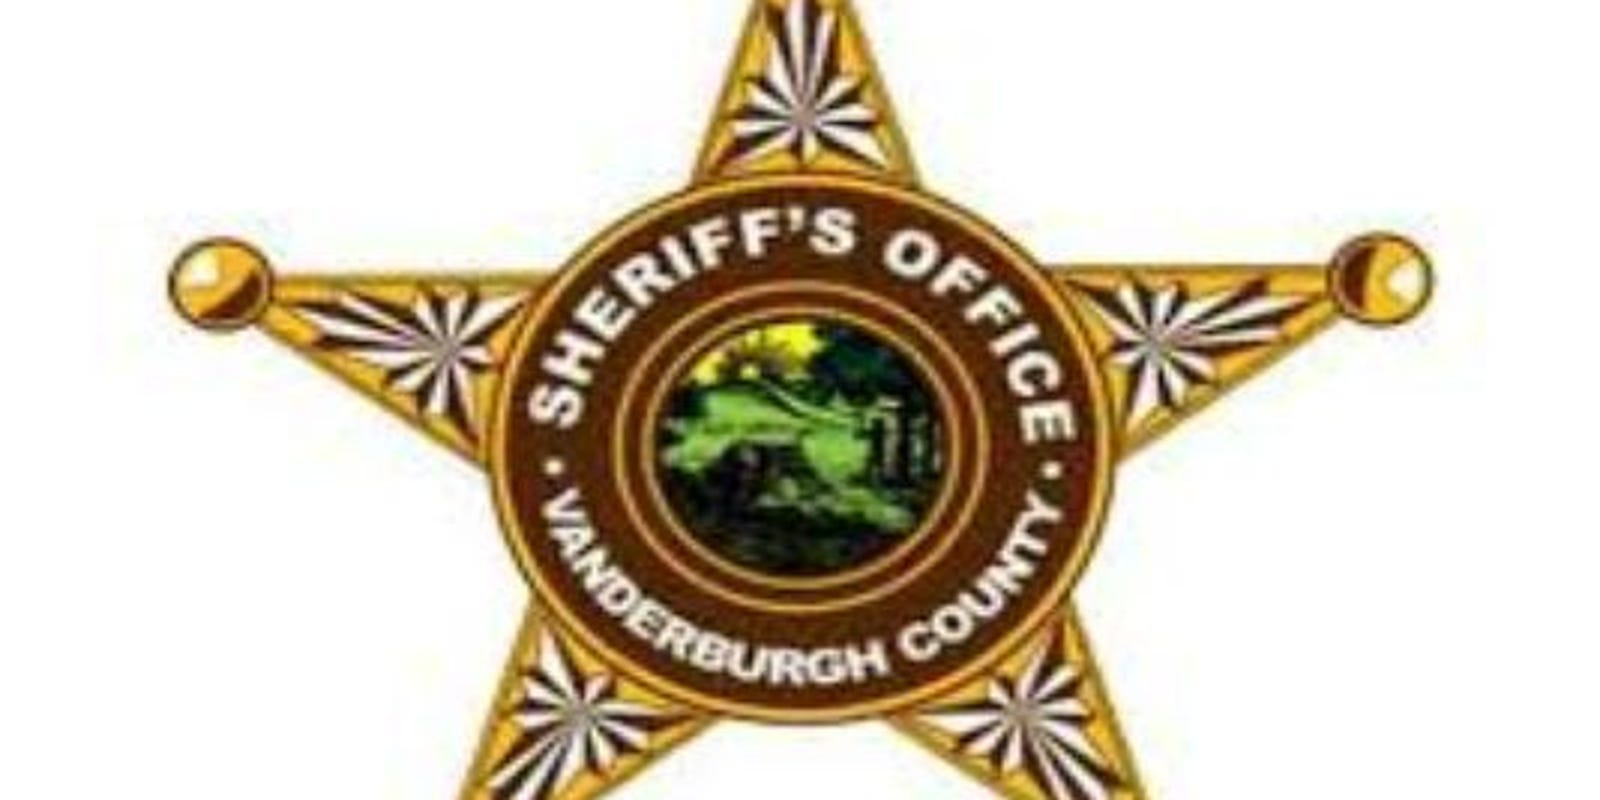 Vanderburgh County Sheriff's Office issues new list of warrants